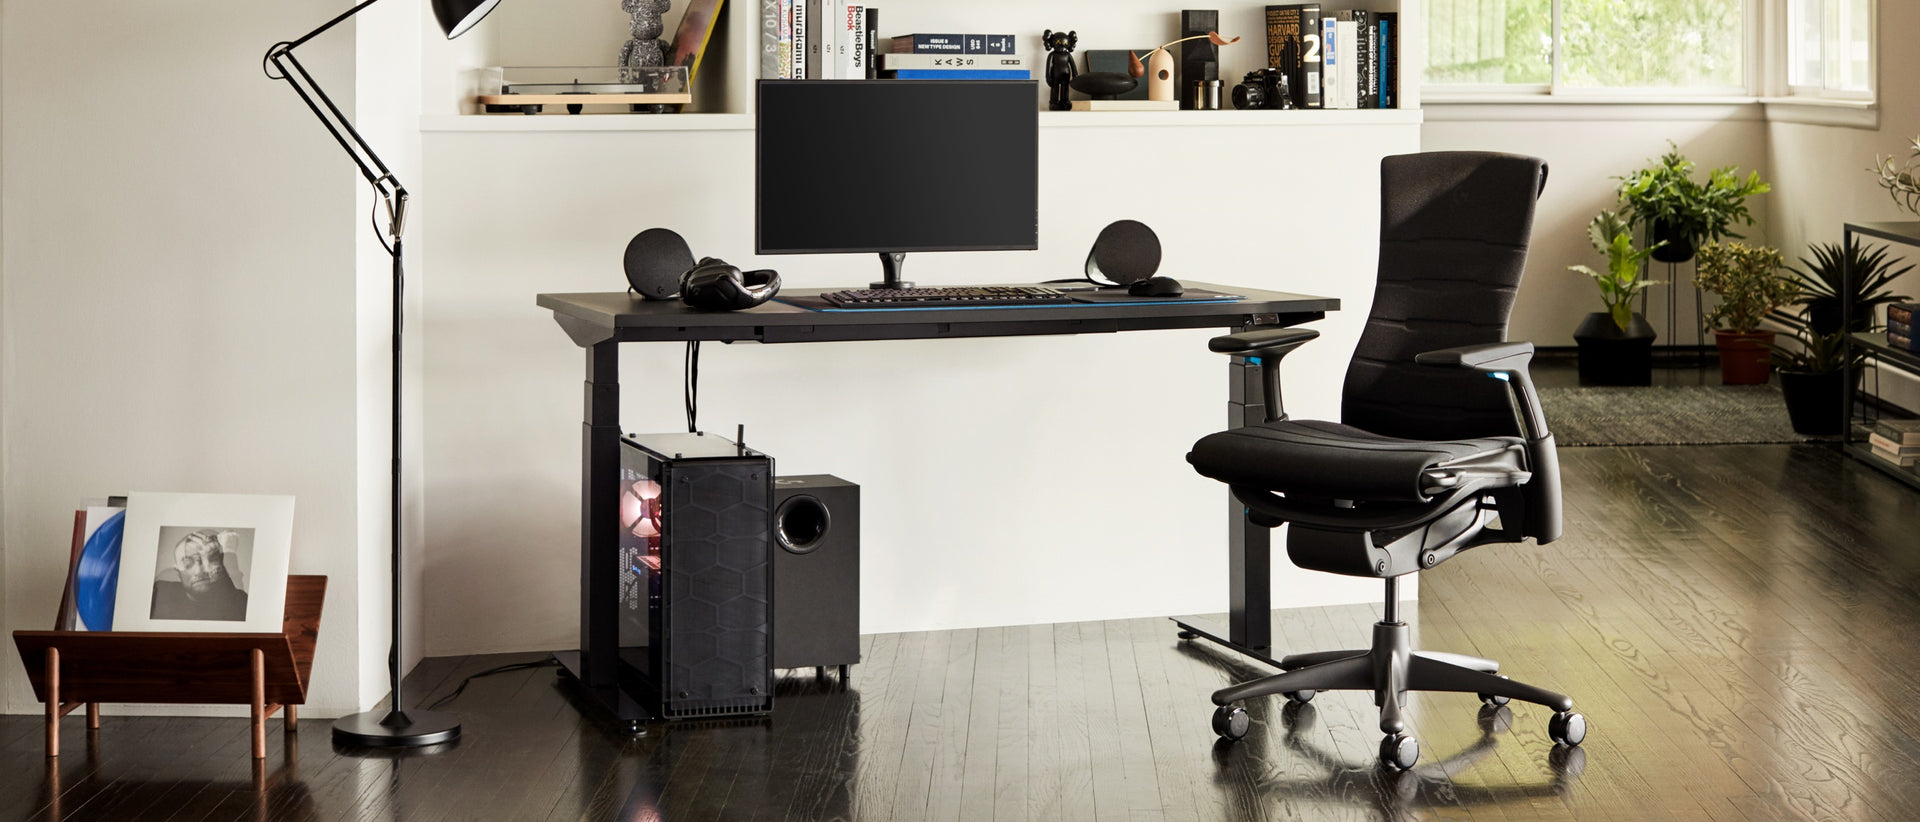 A residential setting features the full setup, including the Embody Gaming Chair, Ollin Monitor Arm, and Nevi Gaming Desk, in the daytime.